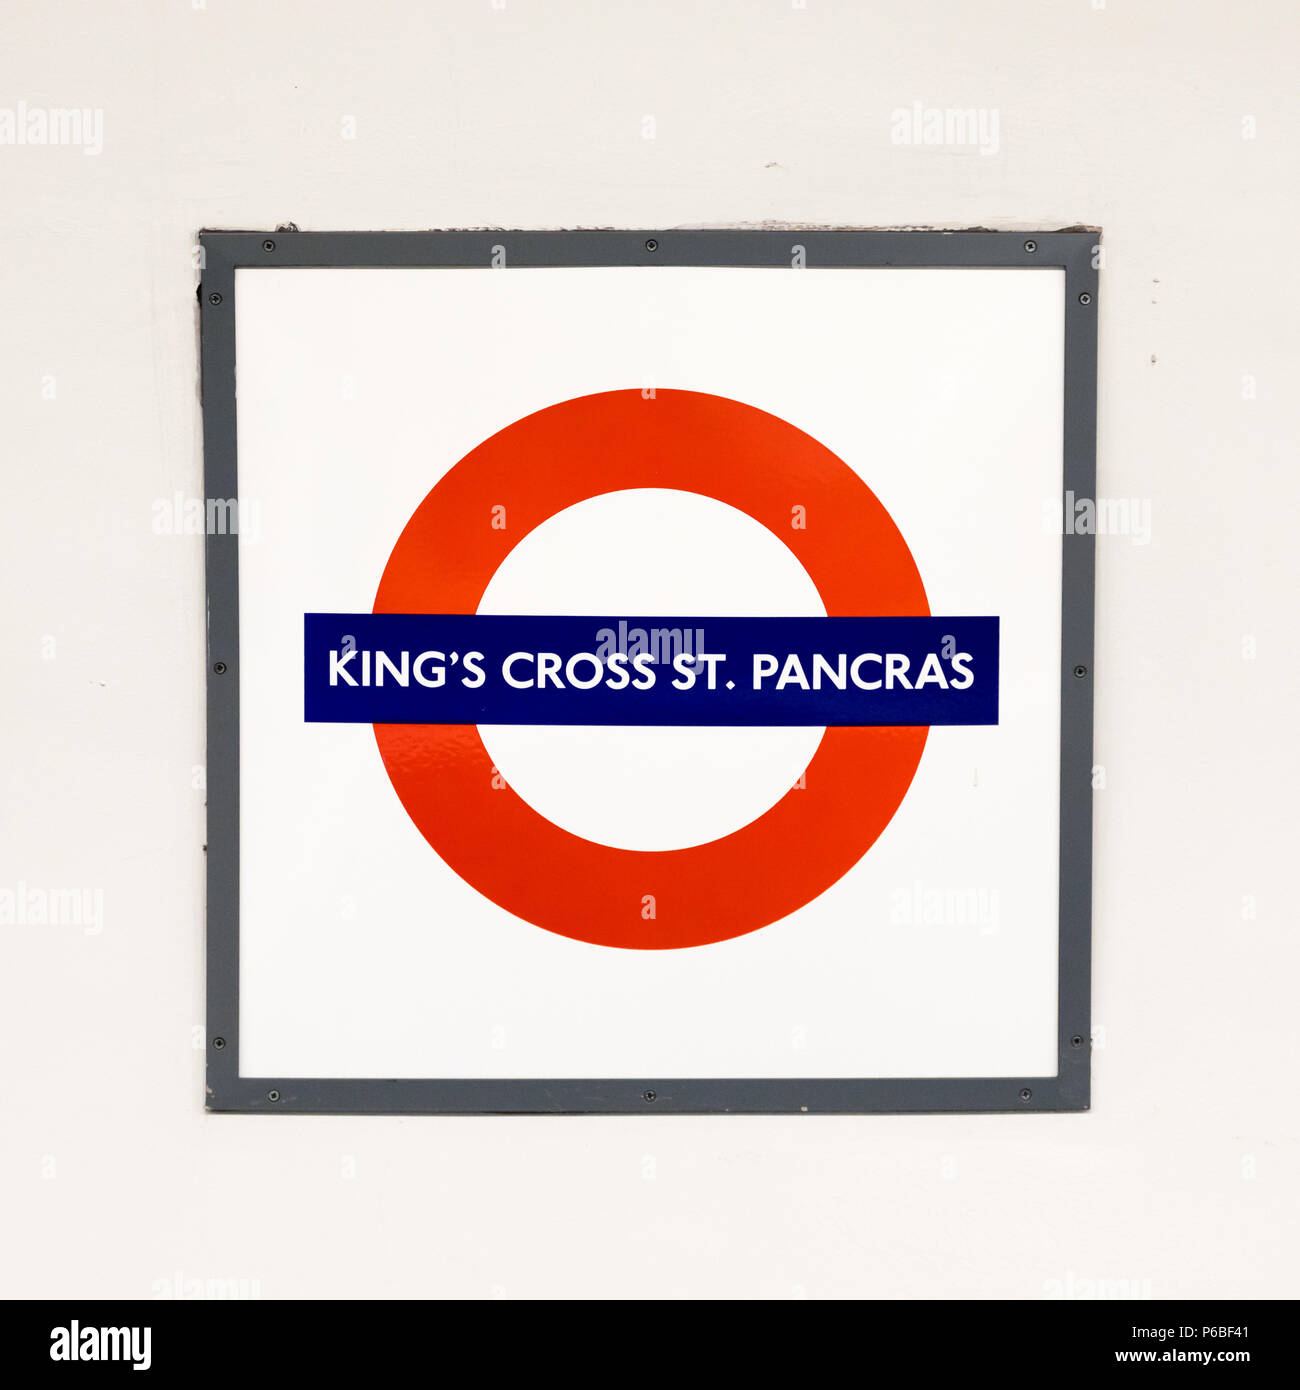 London, UK - 6th June 2017: Kings Cross St. Pancras underground sign on the wall in the tube station. Iconic London emblem for the Underground trains  - Stock Image